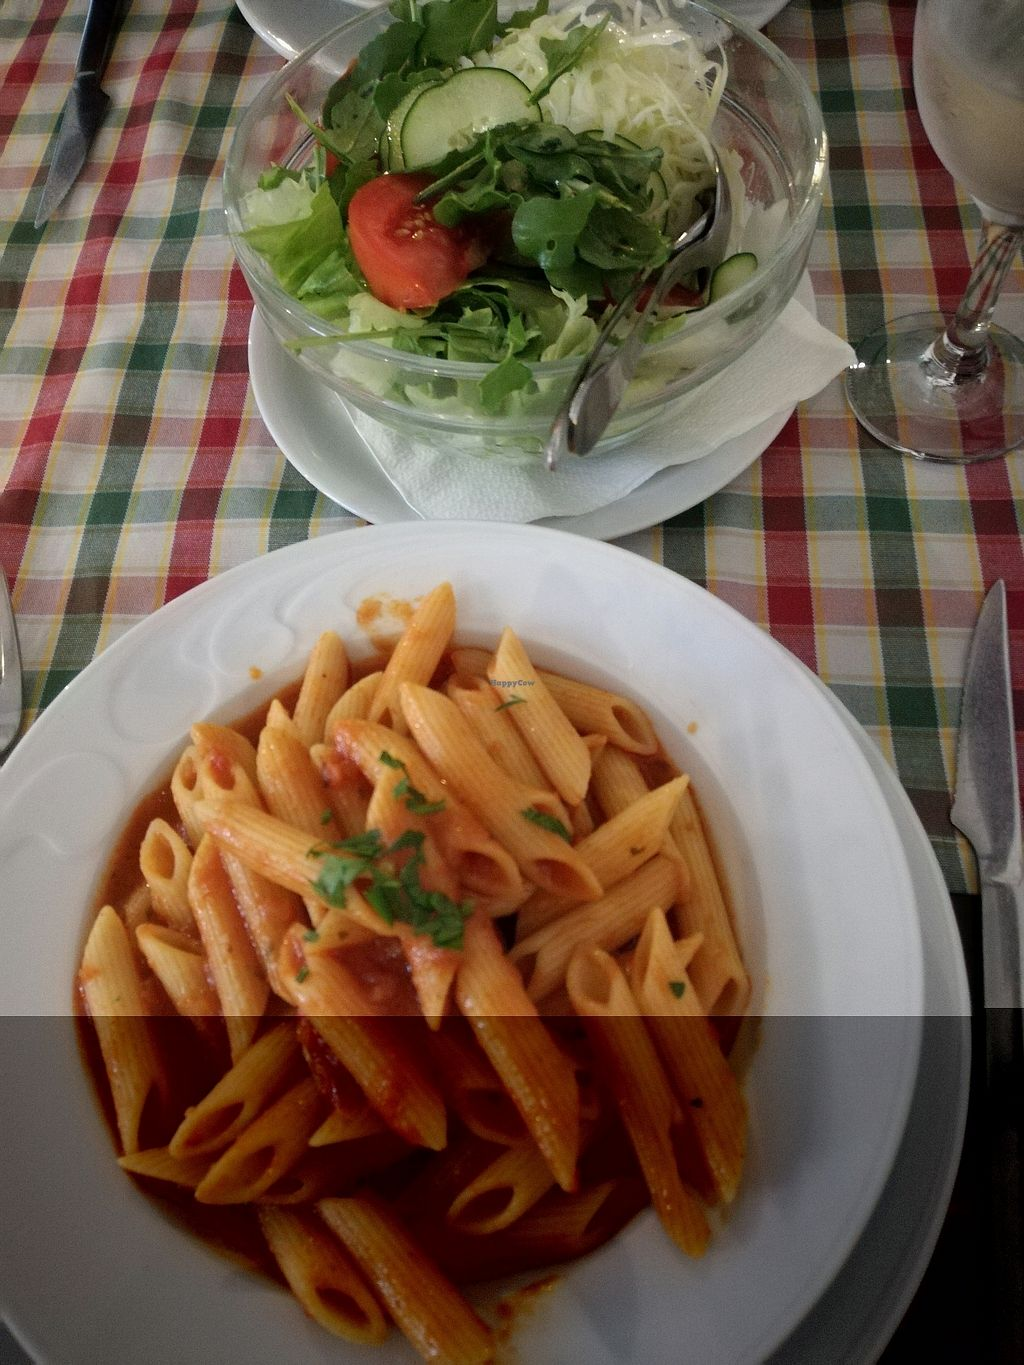 """Photo of Konoba Bonaca  by <a href=""""/members/profile/NatachaDeSousa"""">NatachaDeSousa</a> <br/>tomate pasta and salad on the side <br/> October 19, 2017  - <a href='/contact/abuse/image/81756/316580'>Report</a>"""